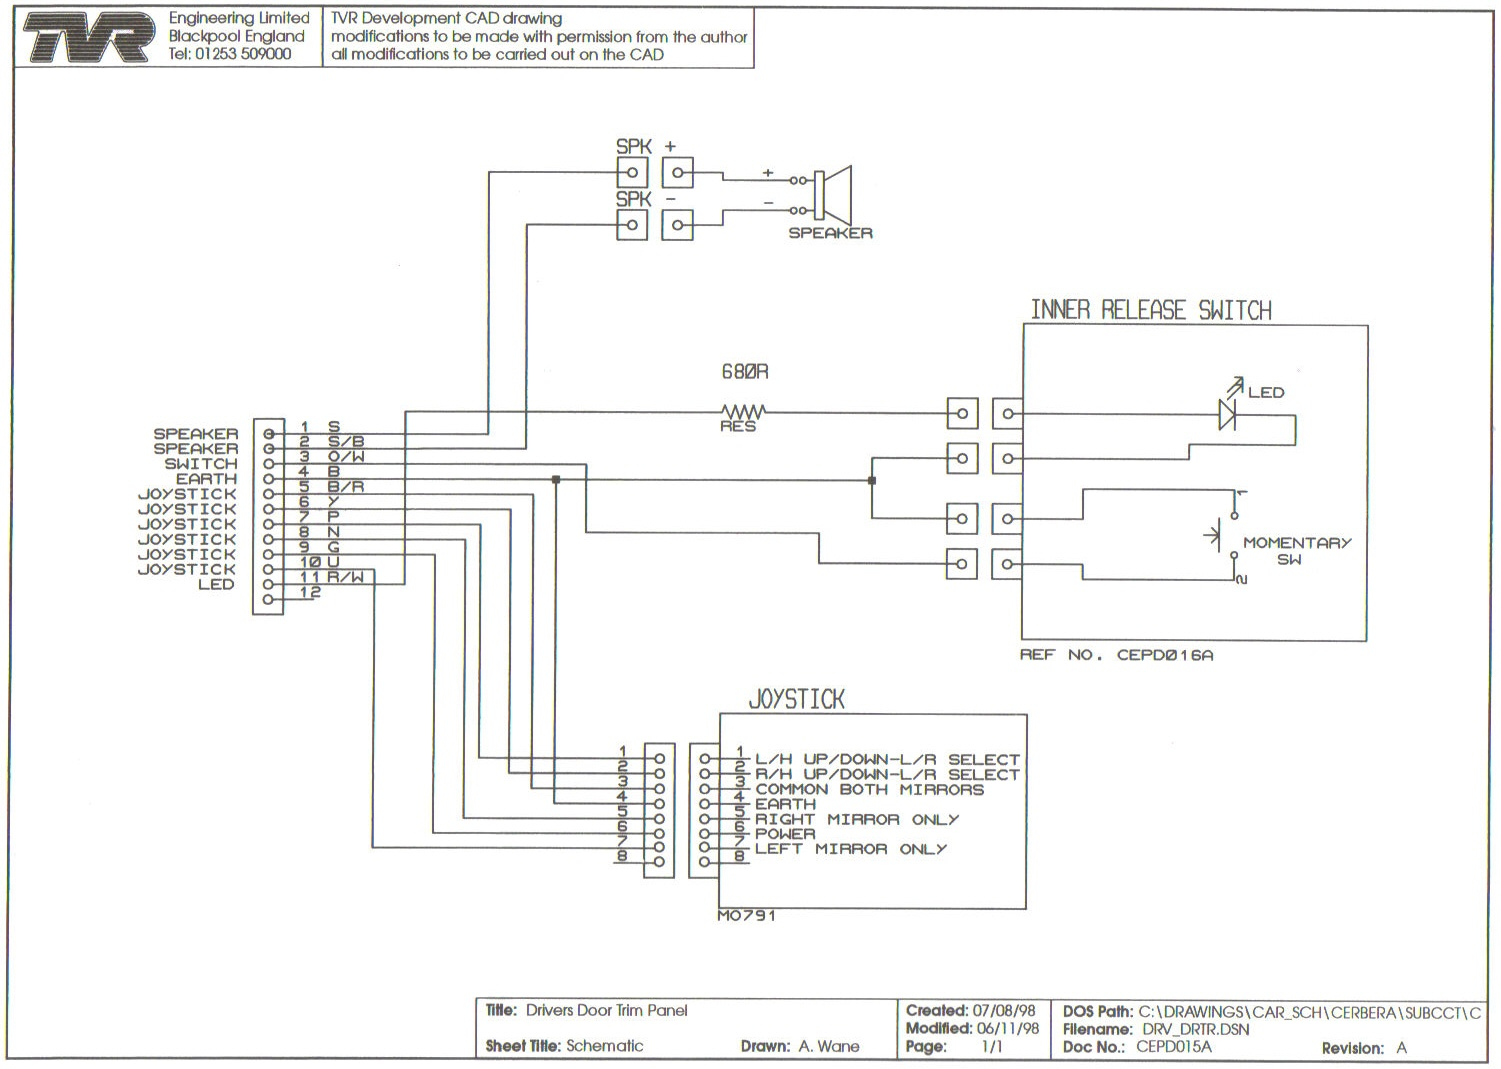 drivers door cepd015a wiring diagrams skoda fabia power steering wiring diagram at creativeand.co